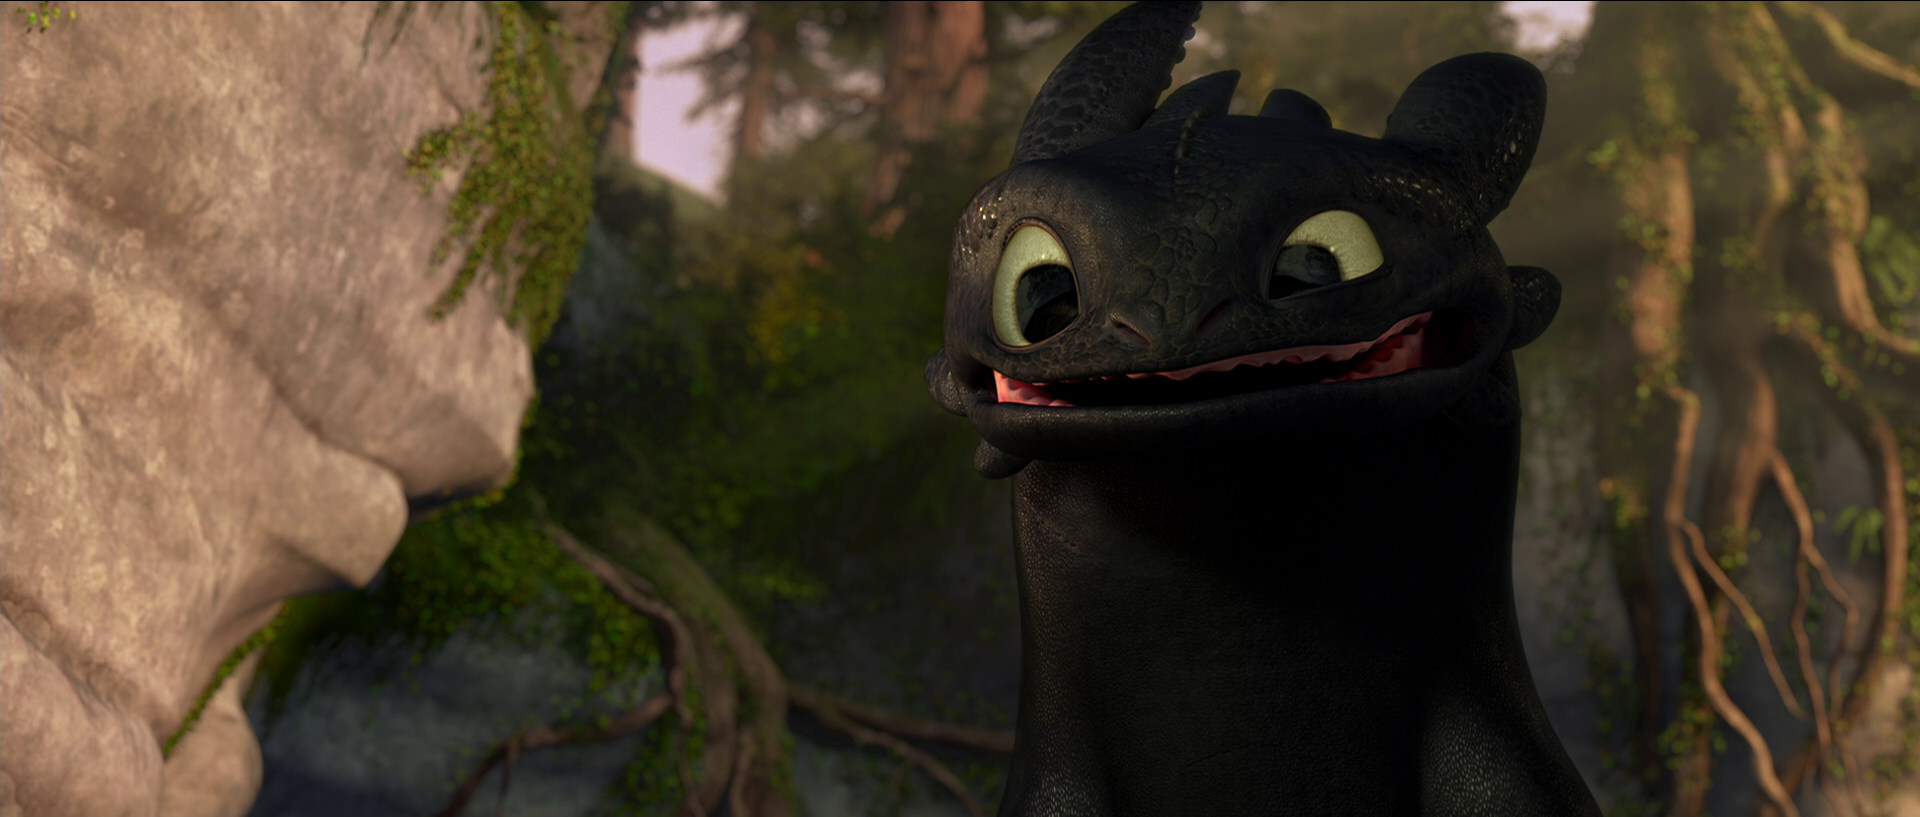 toothless httyd universe wiki fandom powered by wikia